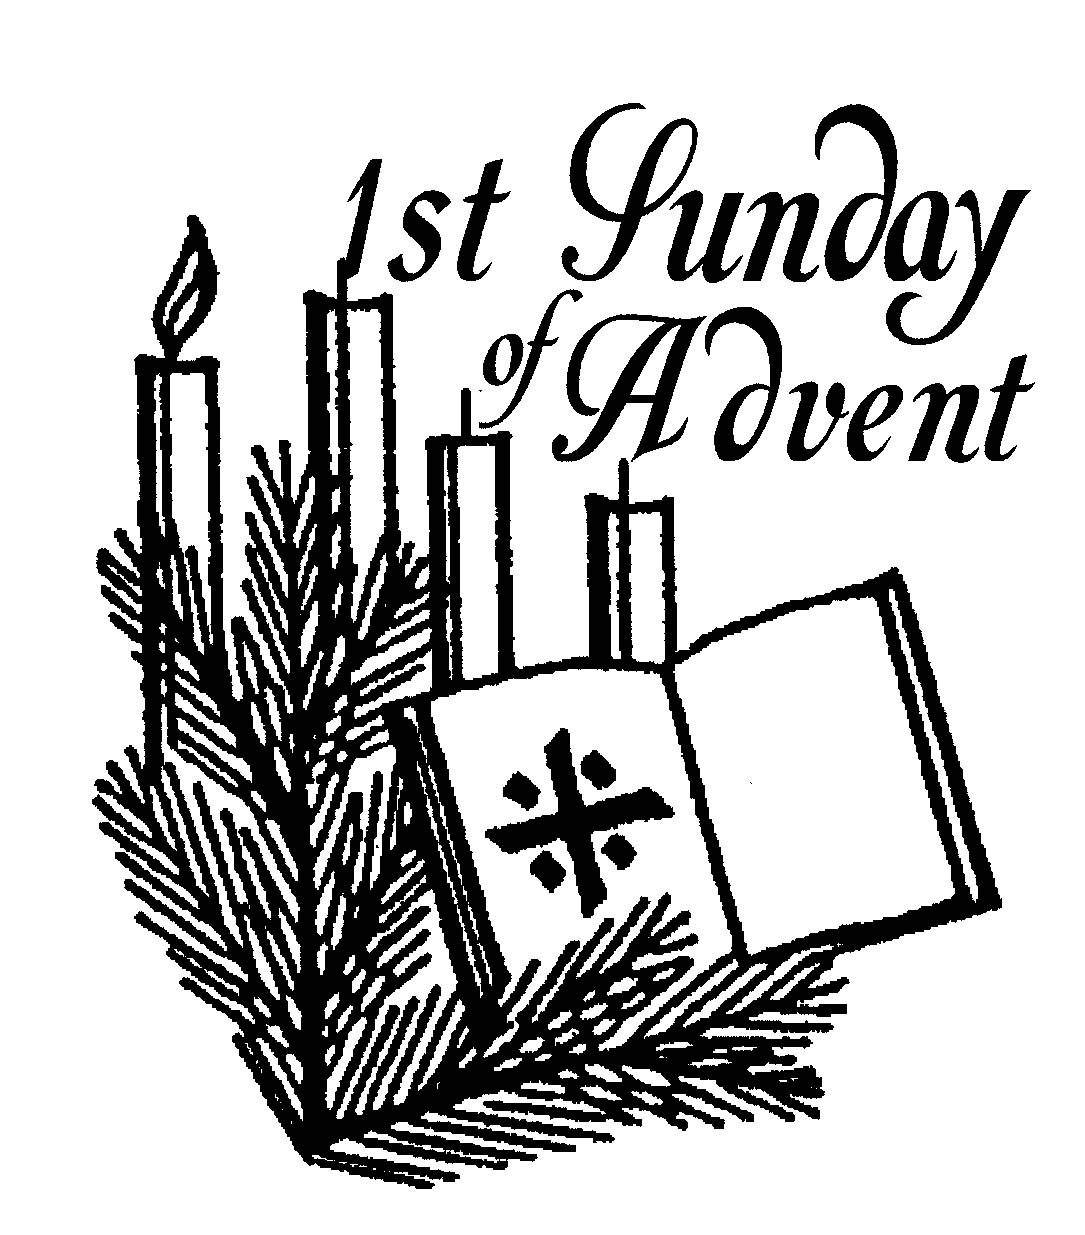 1085x1235 Free Clipart For First Sunday After Christmas Day